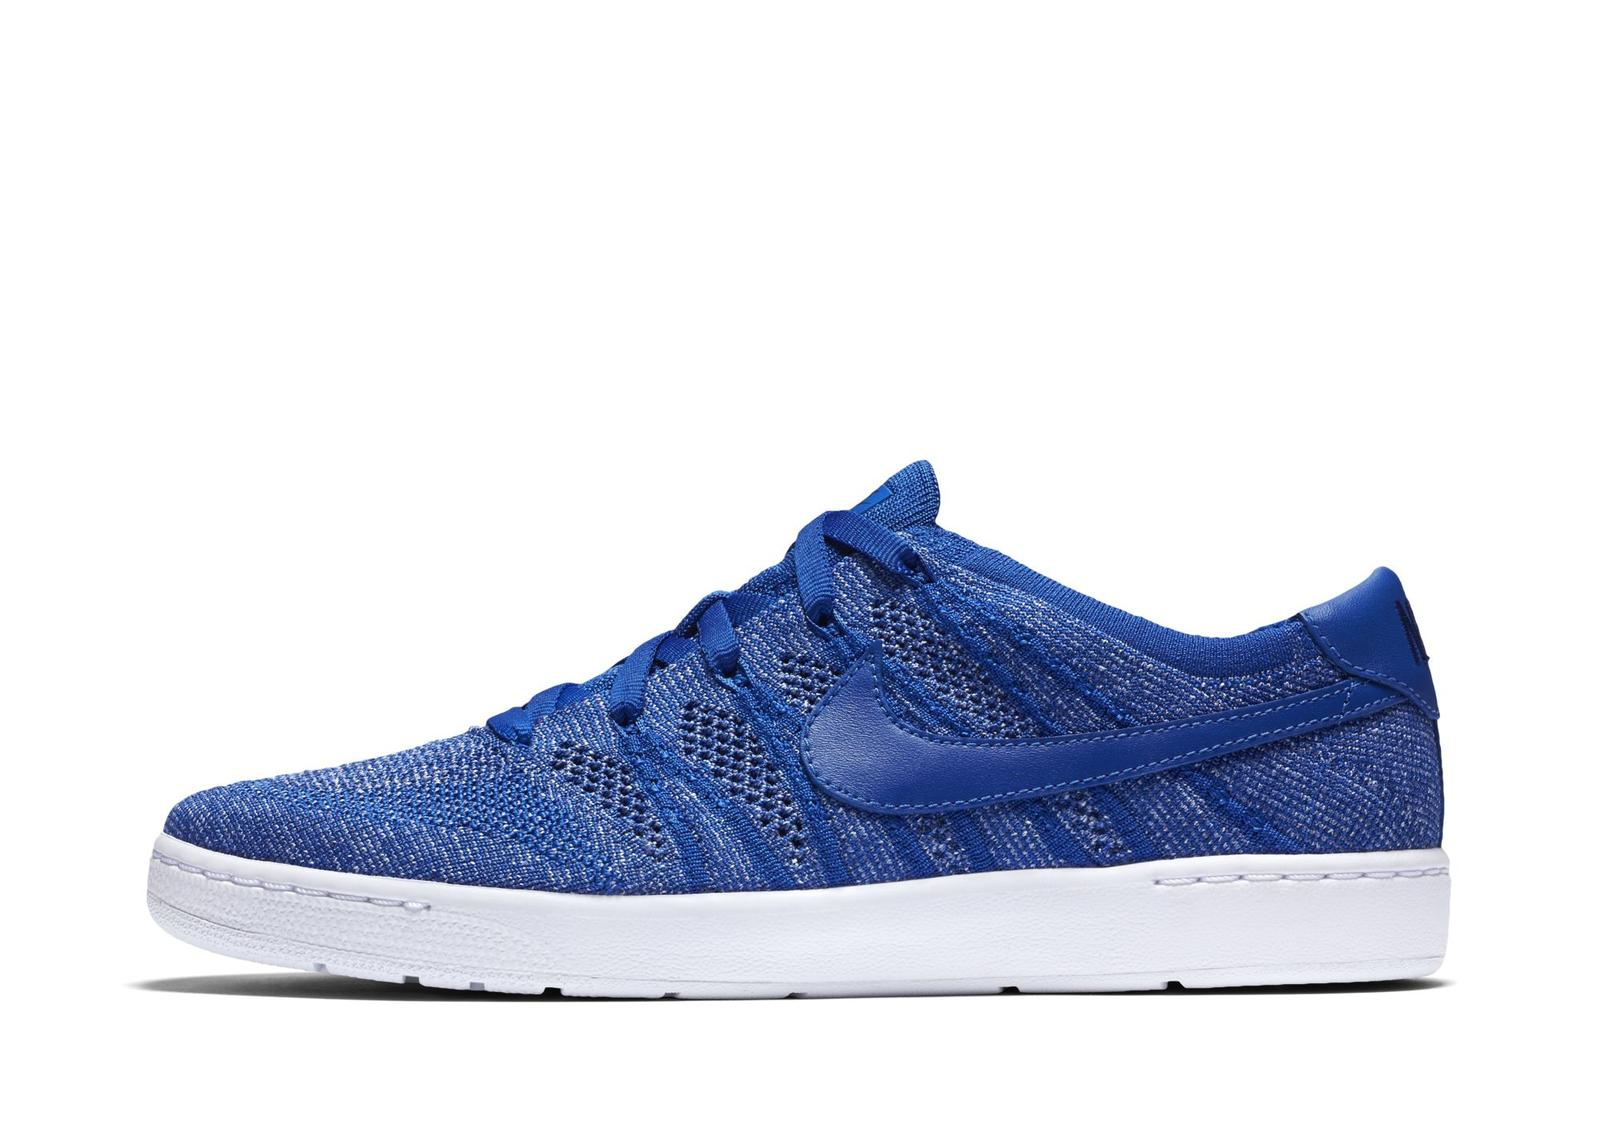 outlet boutique new product half price Flyknit Meets its Match - Nike News